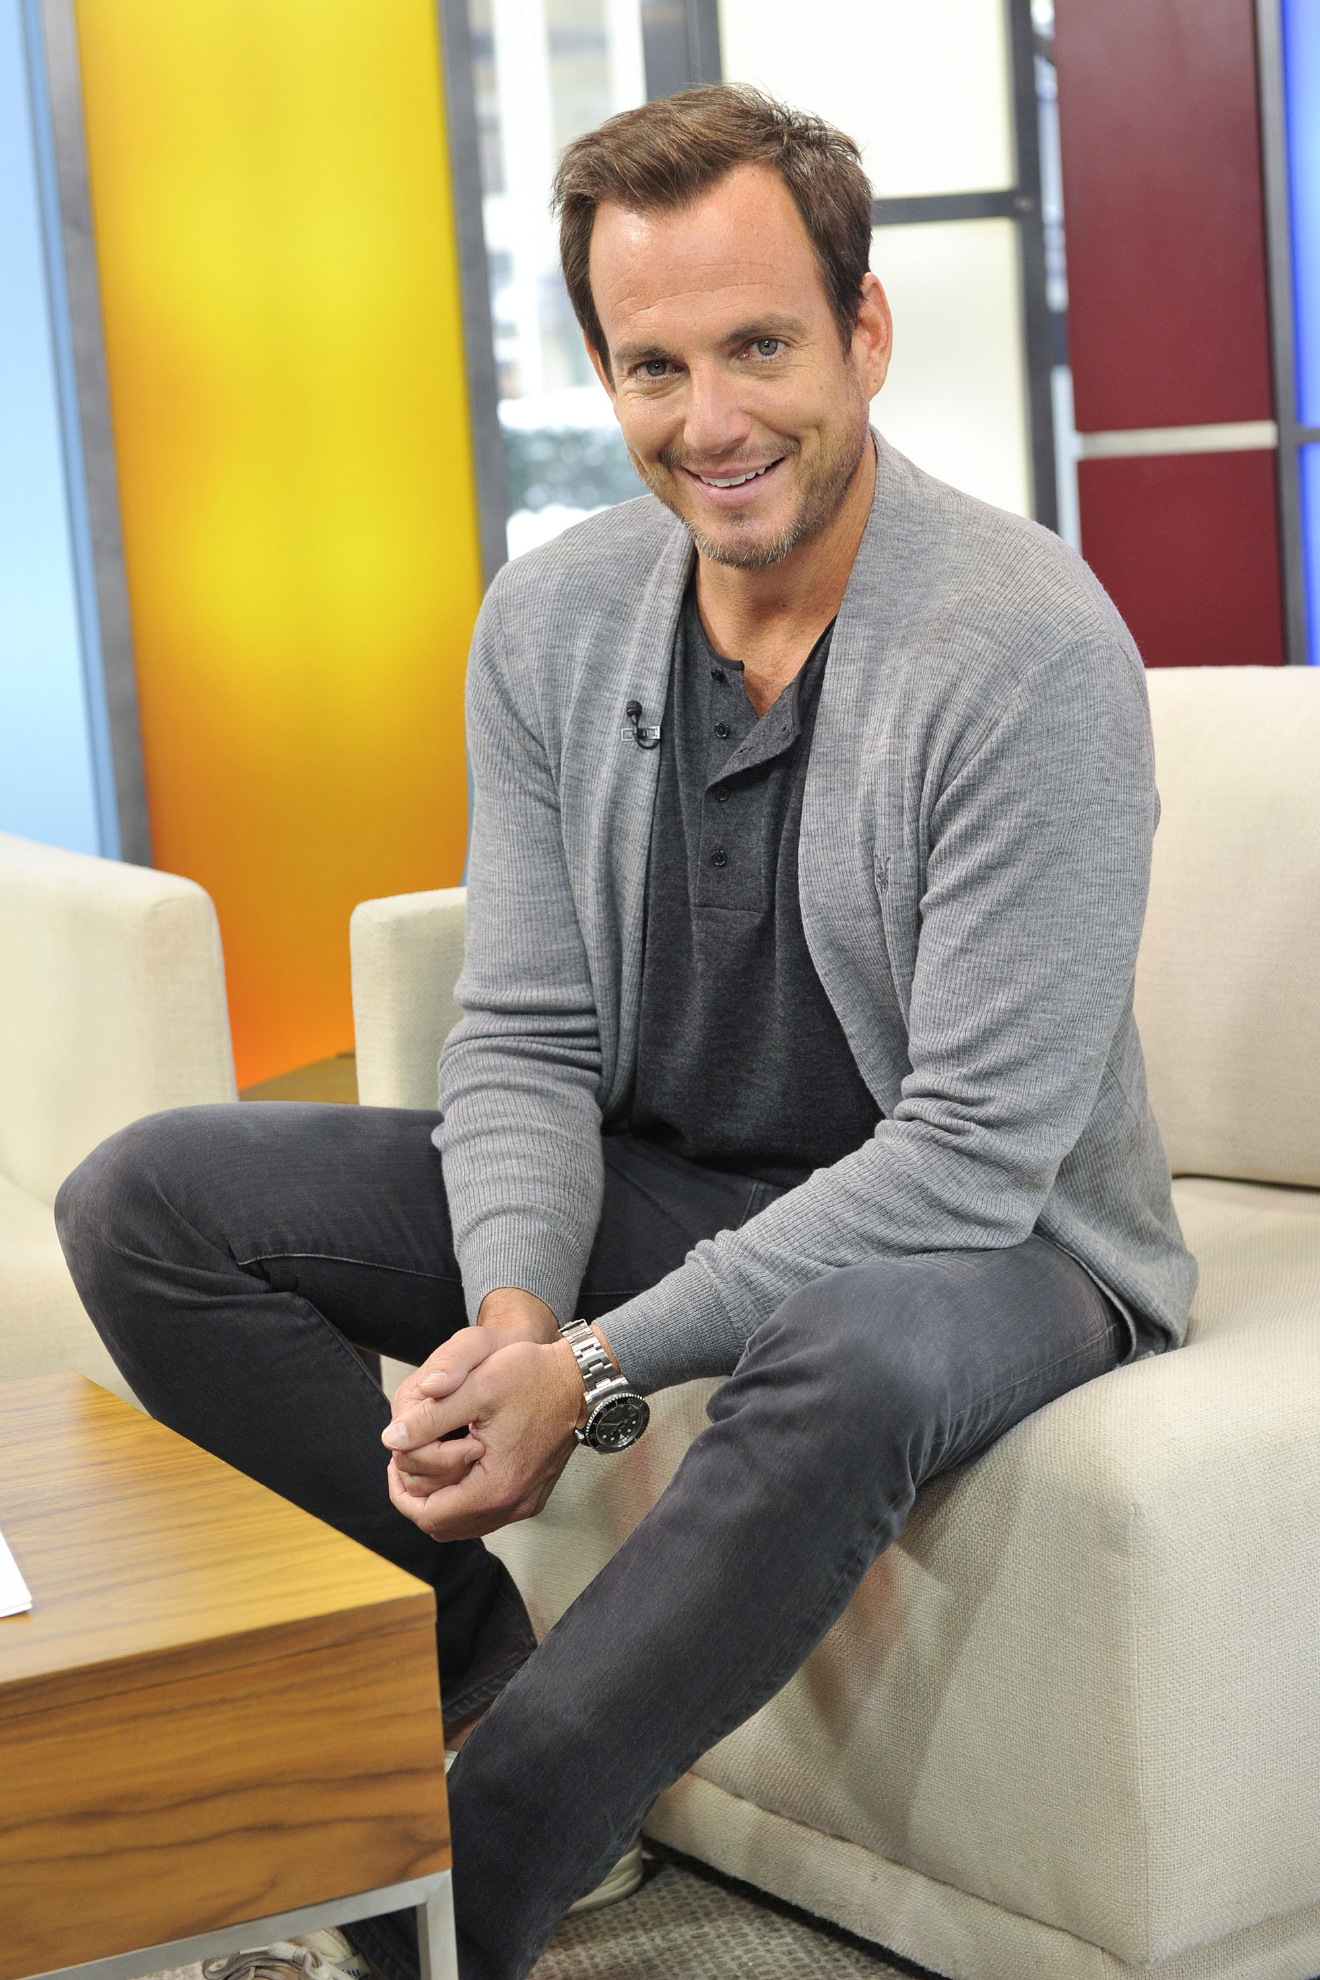 Will Arnett appears on Global TV's The Morning Show to discuss his Netflix series 'FLAKED'.  Featuring: Will Arnett Where: Toronto, Canada When: 04 Mar 2016 Credit: Dominic Chan/WENN.com